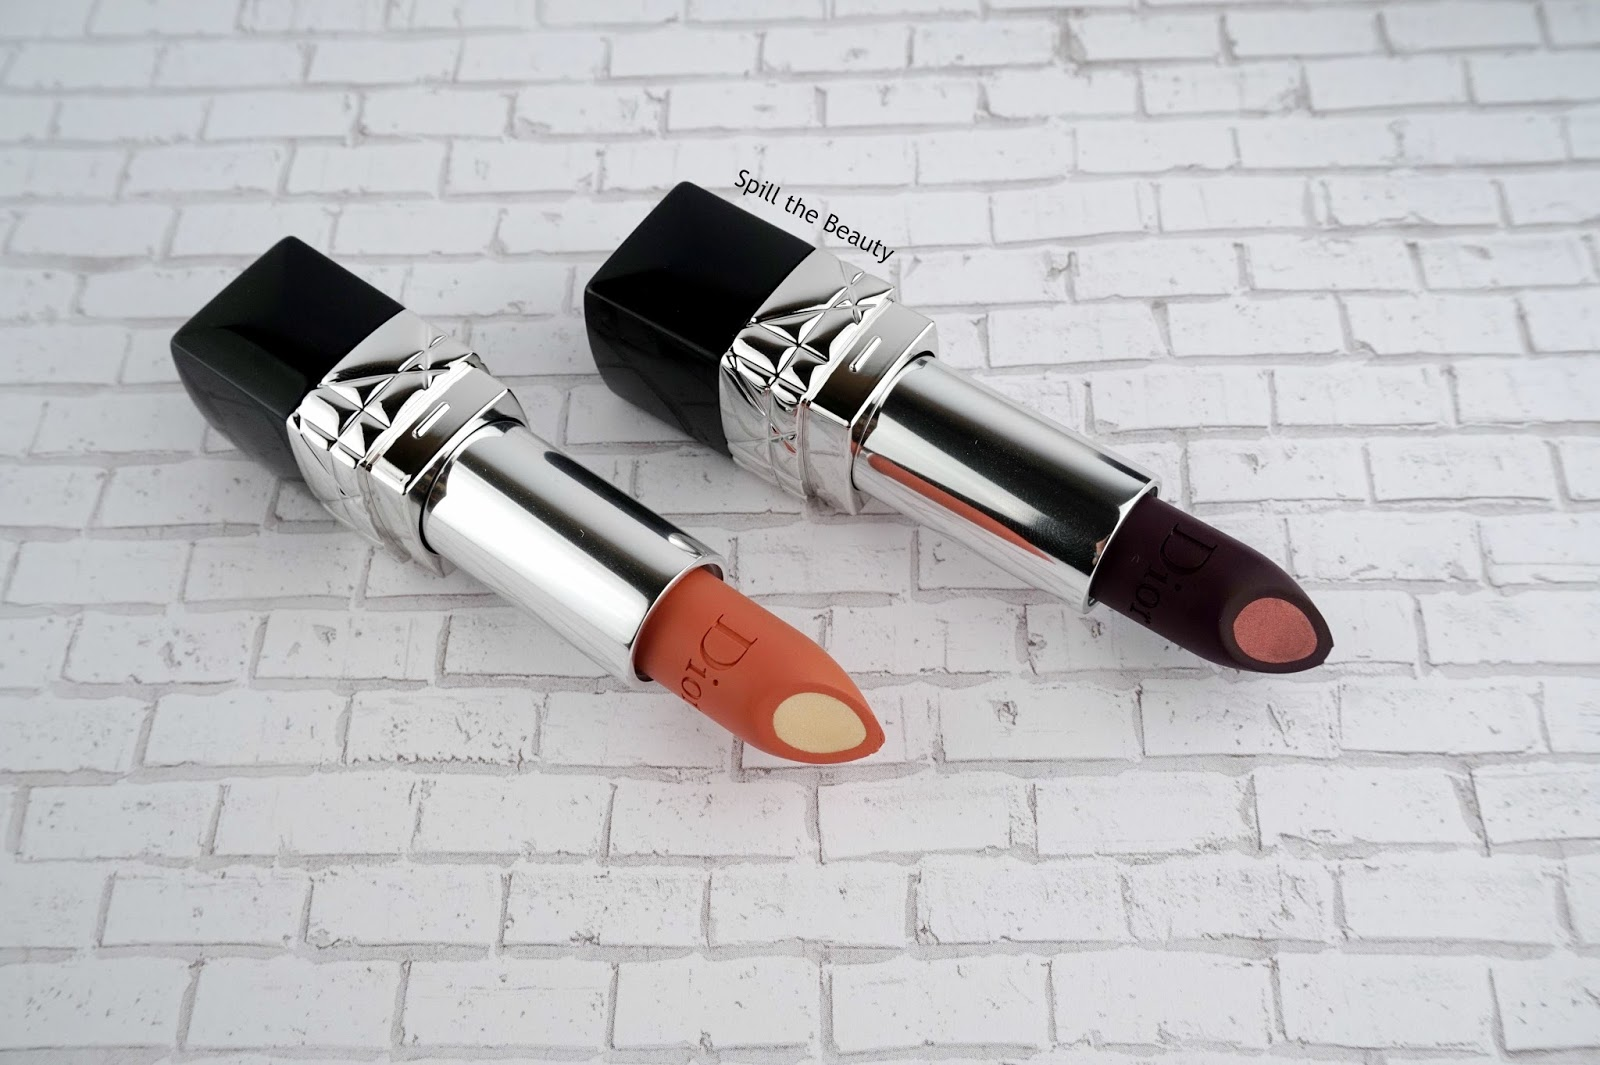 Nude Look Rouge Dior Double Rouge Lipstick - Review, Swatches, And Looks - Spill The Beauty